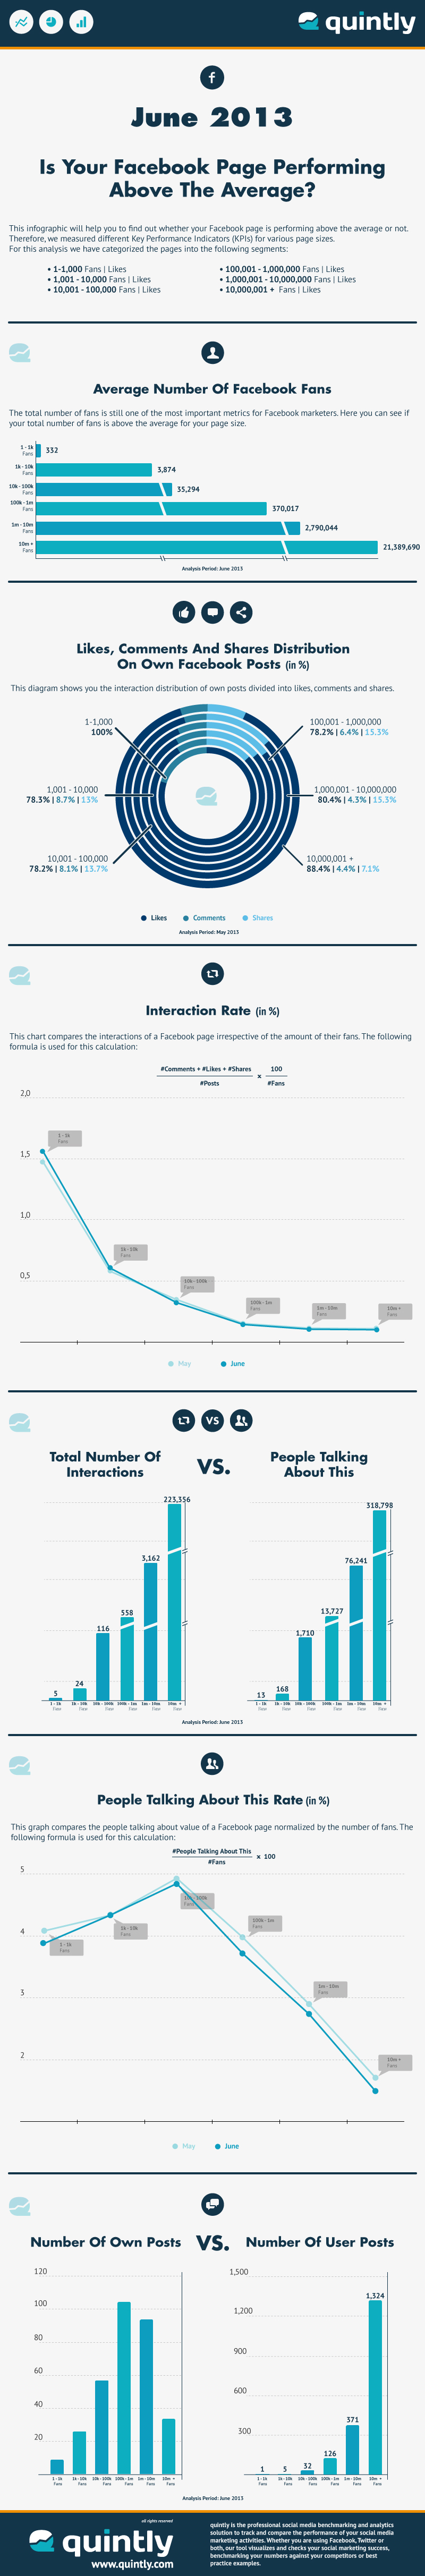 quintly_Infographic_Average_Facebook_Page_Performance_Jun_2013